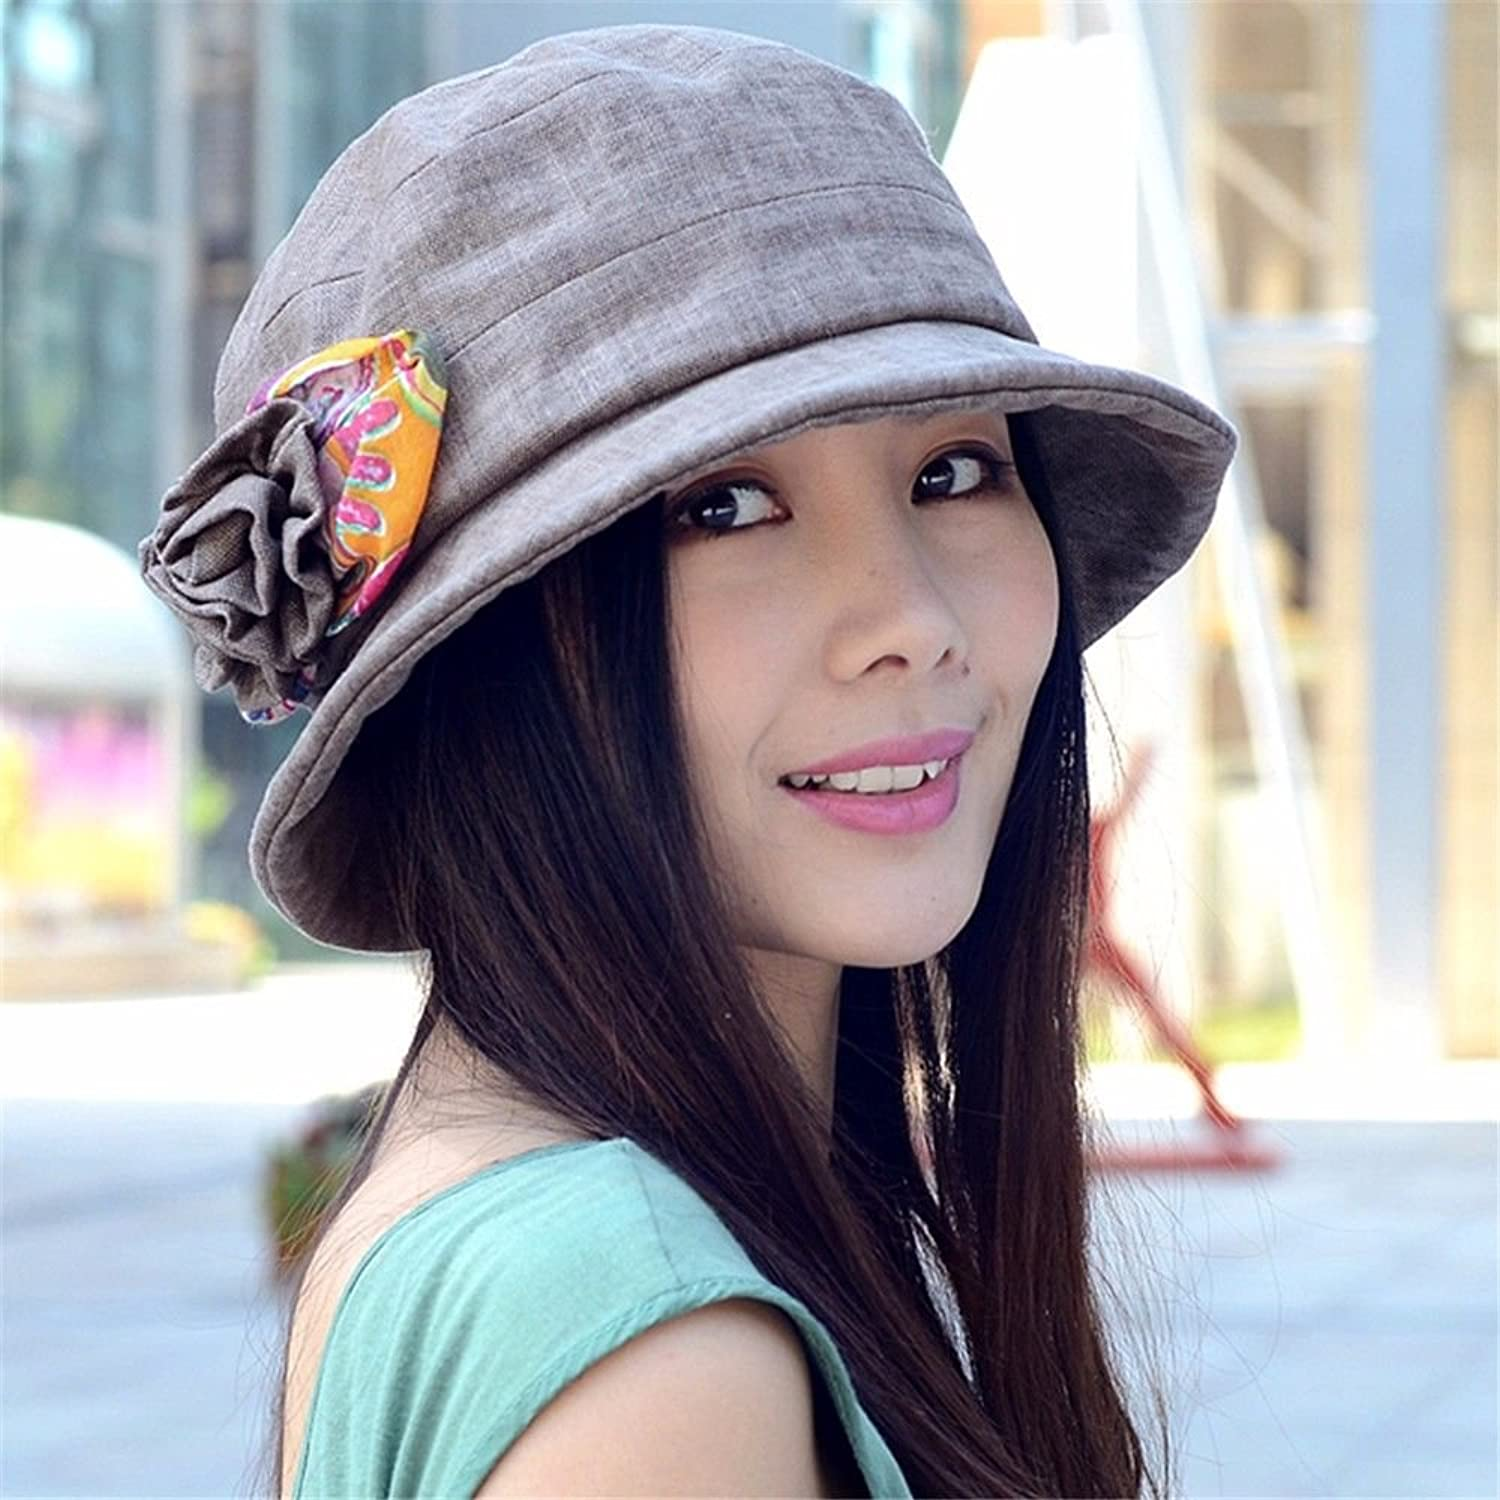 Women's Spring and Autumn Elegant and Leisure Cotton and Hemp hat (Size Adjustable)